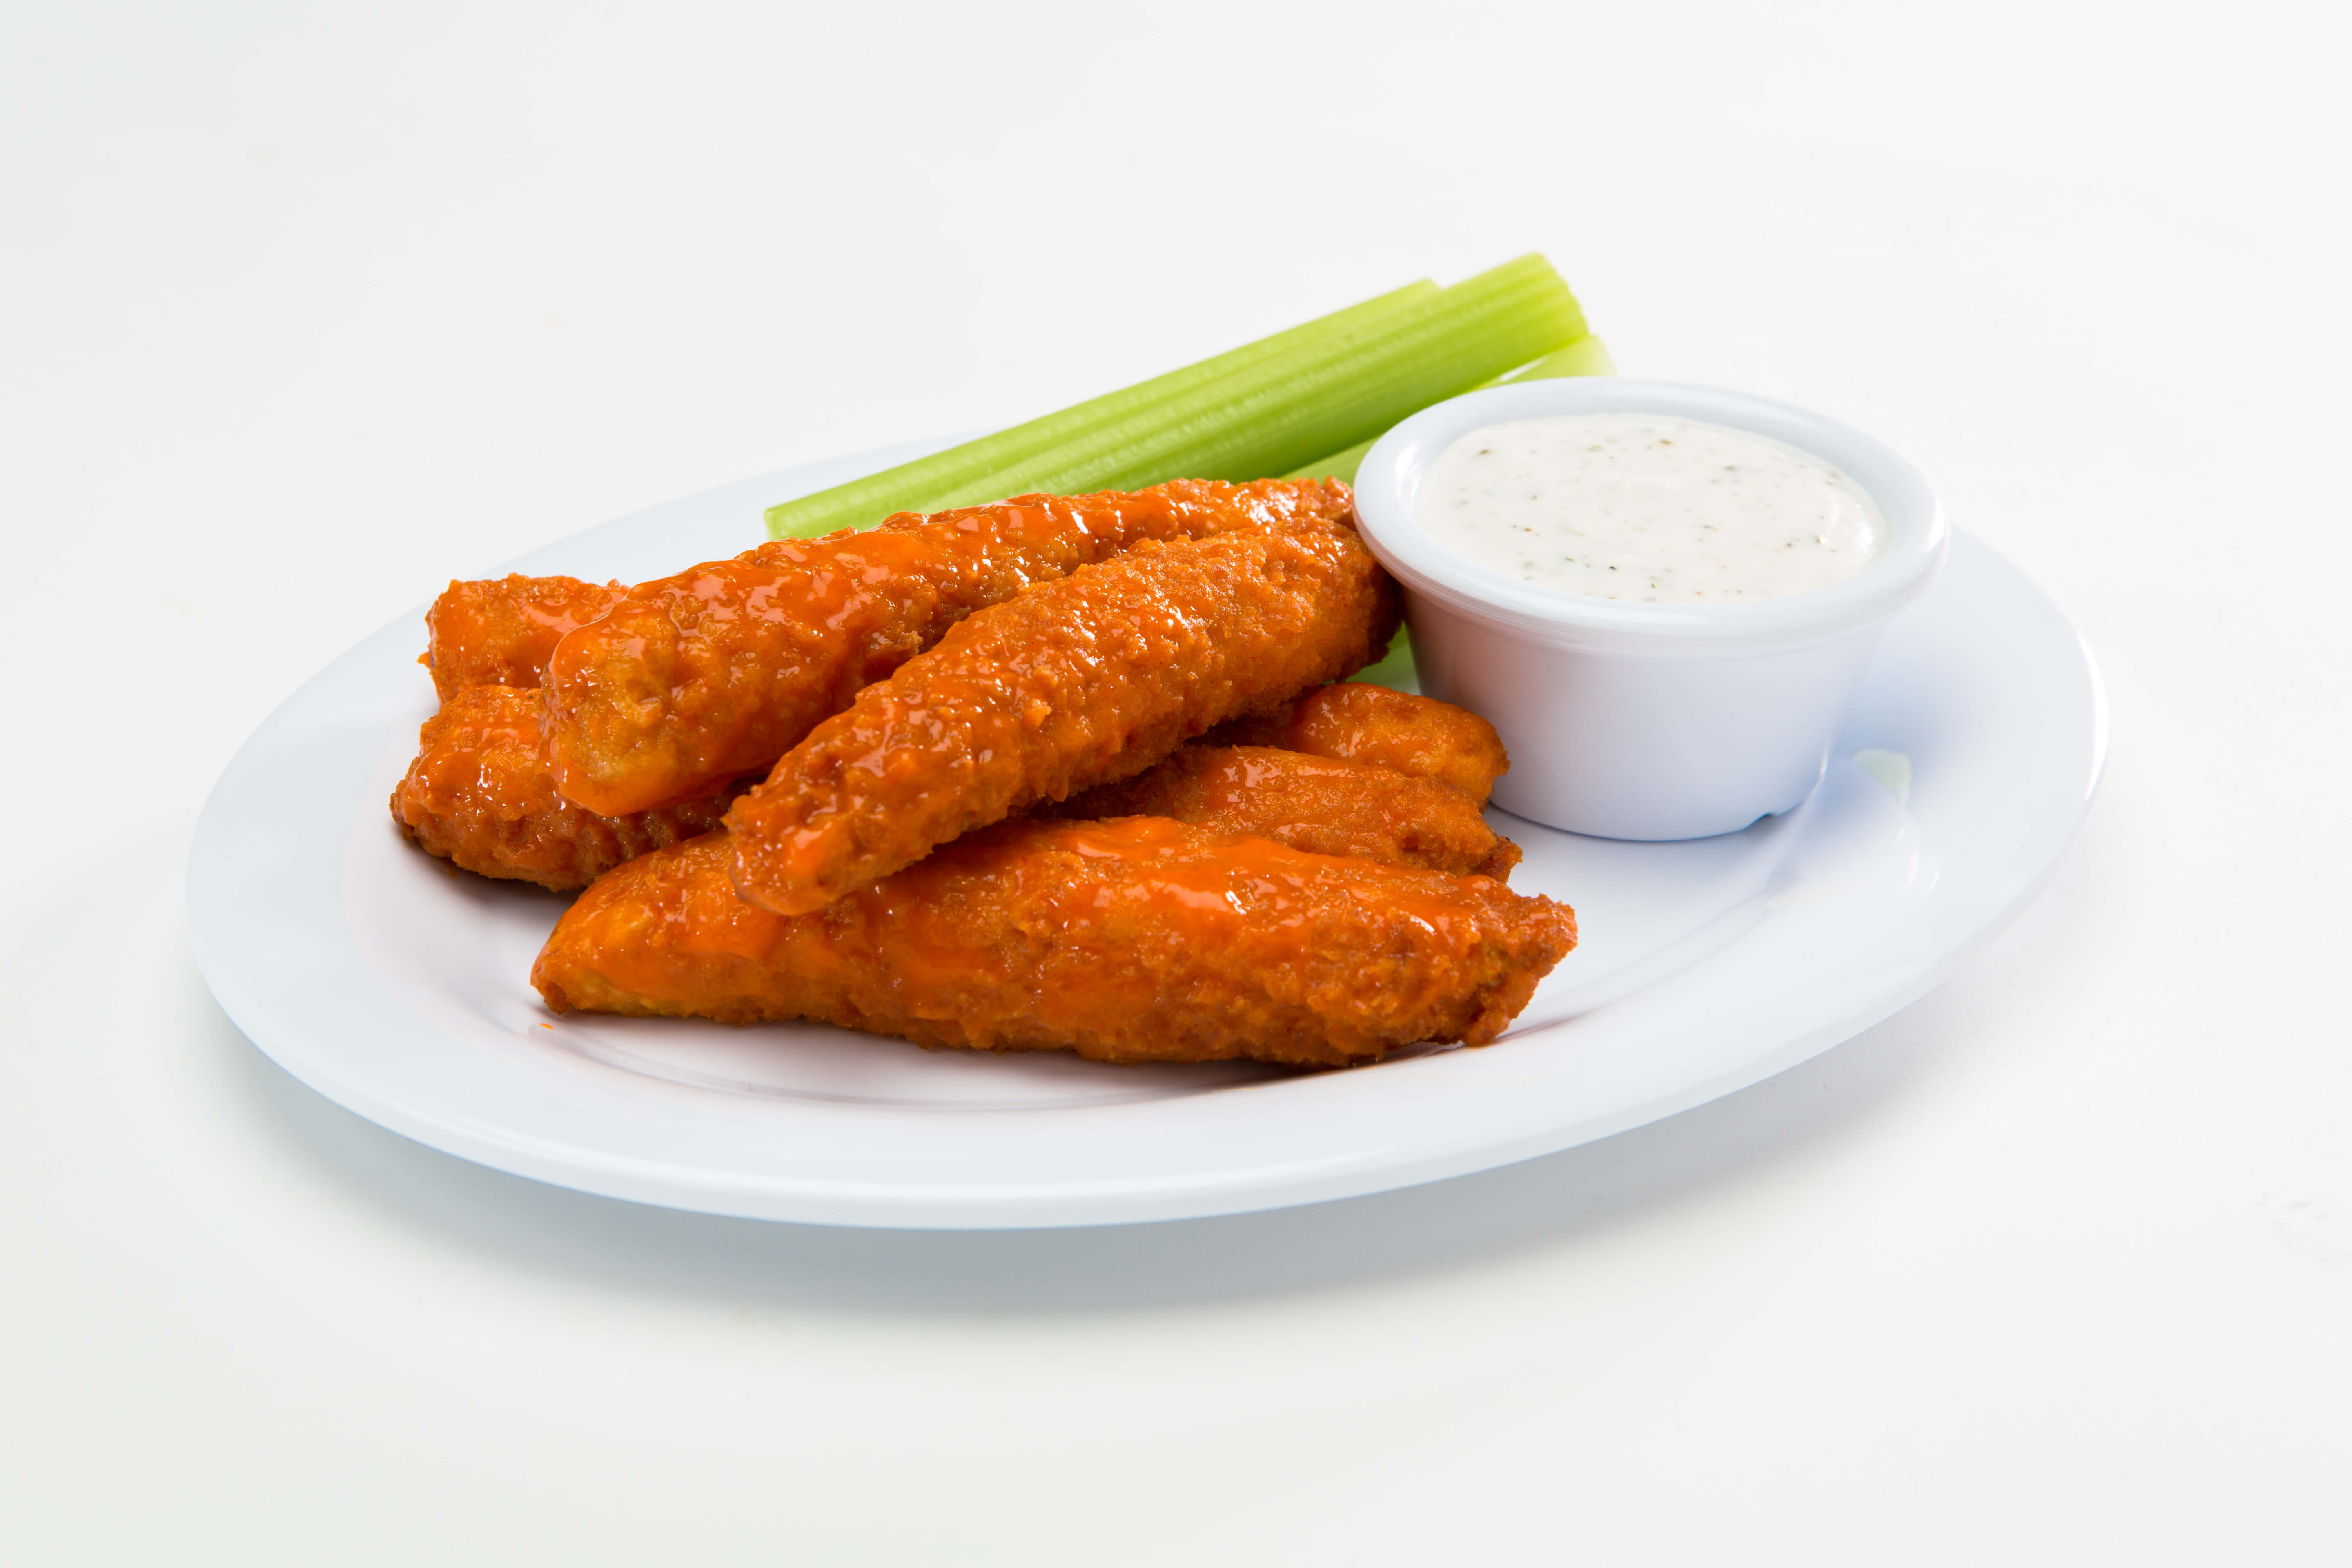 And The Restaurant Chain S Vegan Buffalo Wings Served With Celery And Creamy Vegan Ranch Dressing Are No Exception If You Re Lucky Enough To Be Out